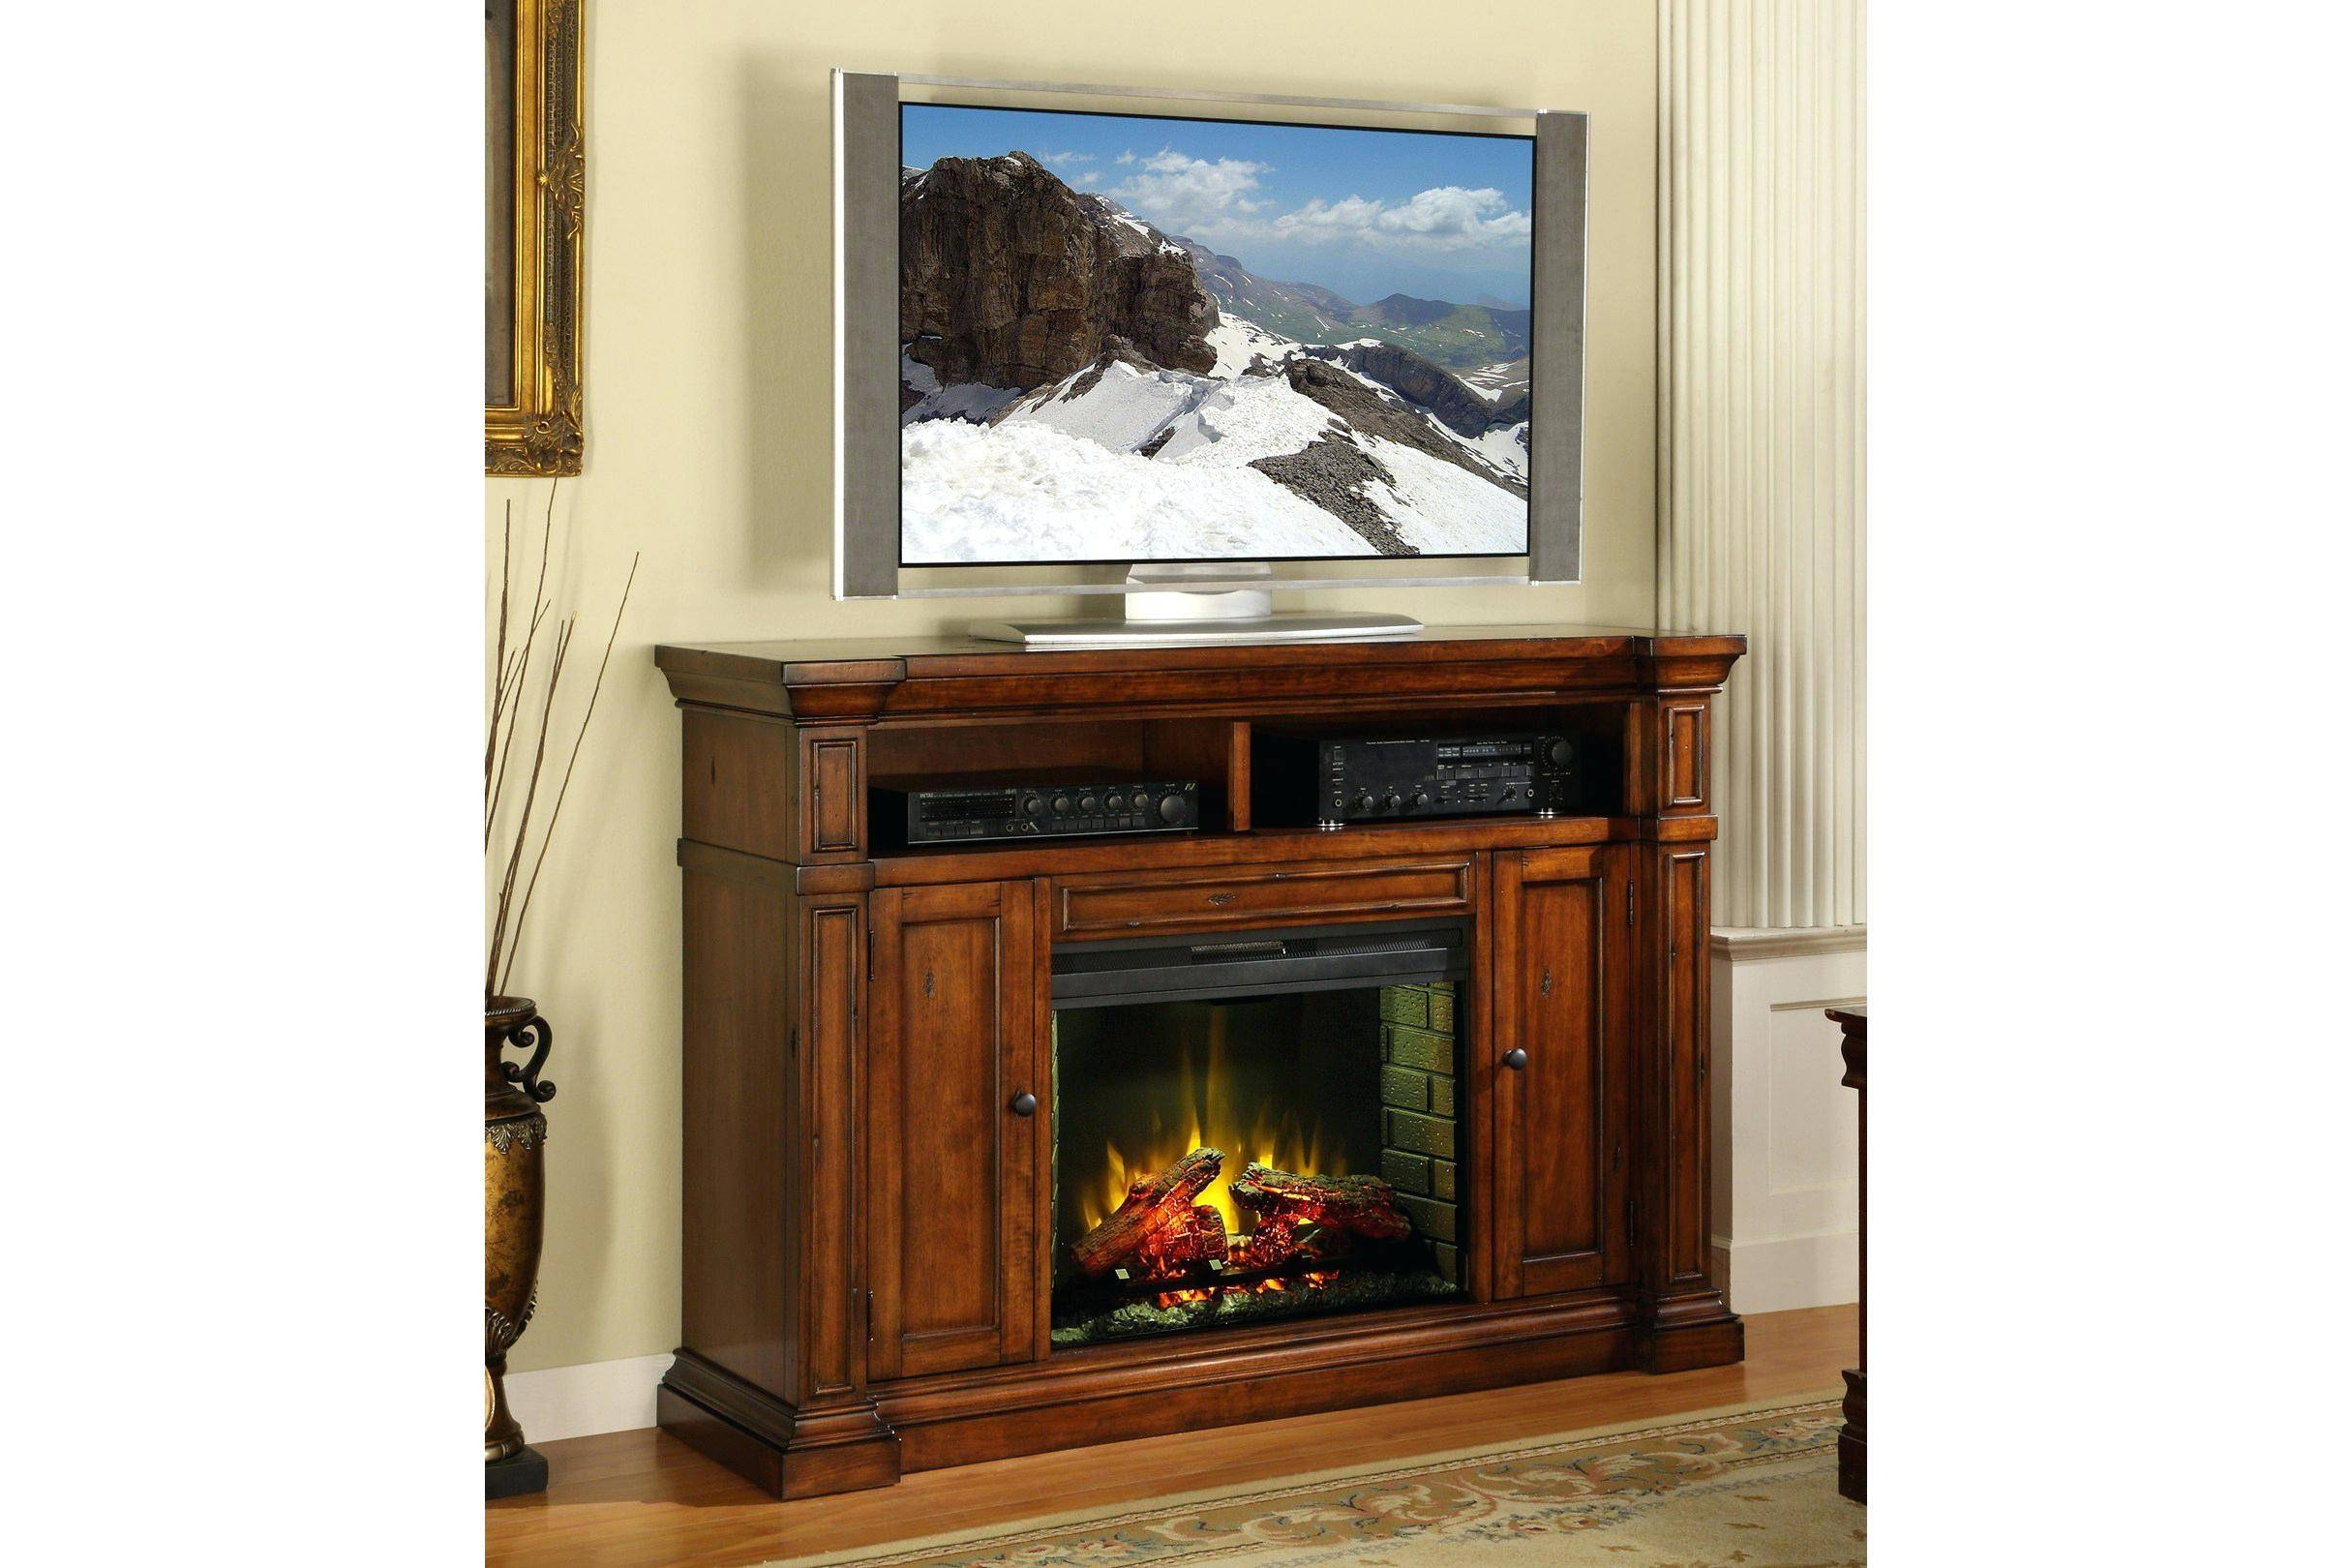 Tv Stand : Furniture Ideas Shaker Corner Tv Stand With Dvd Opening pertaining to Maple Tv Stands For Flat Screens (Image 11 of 15)